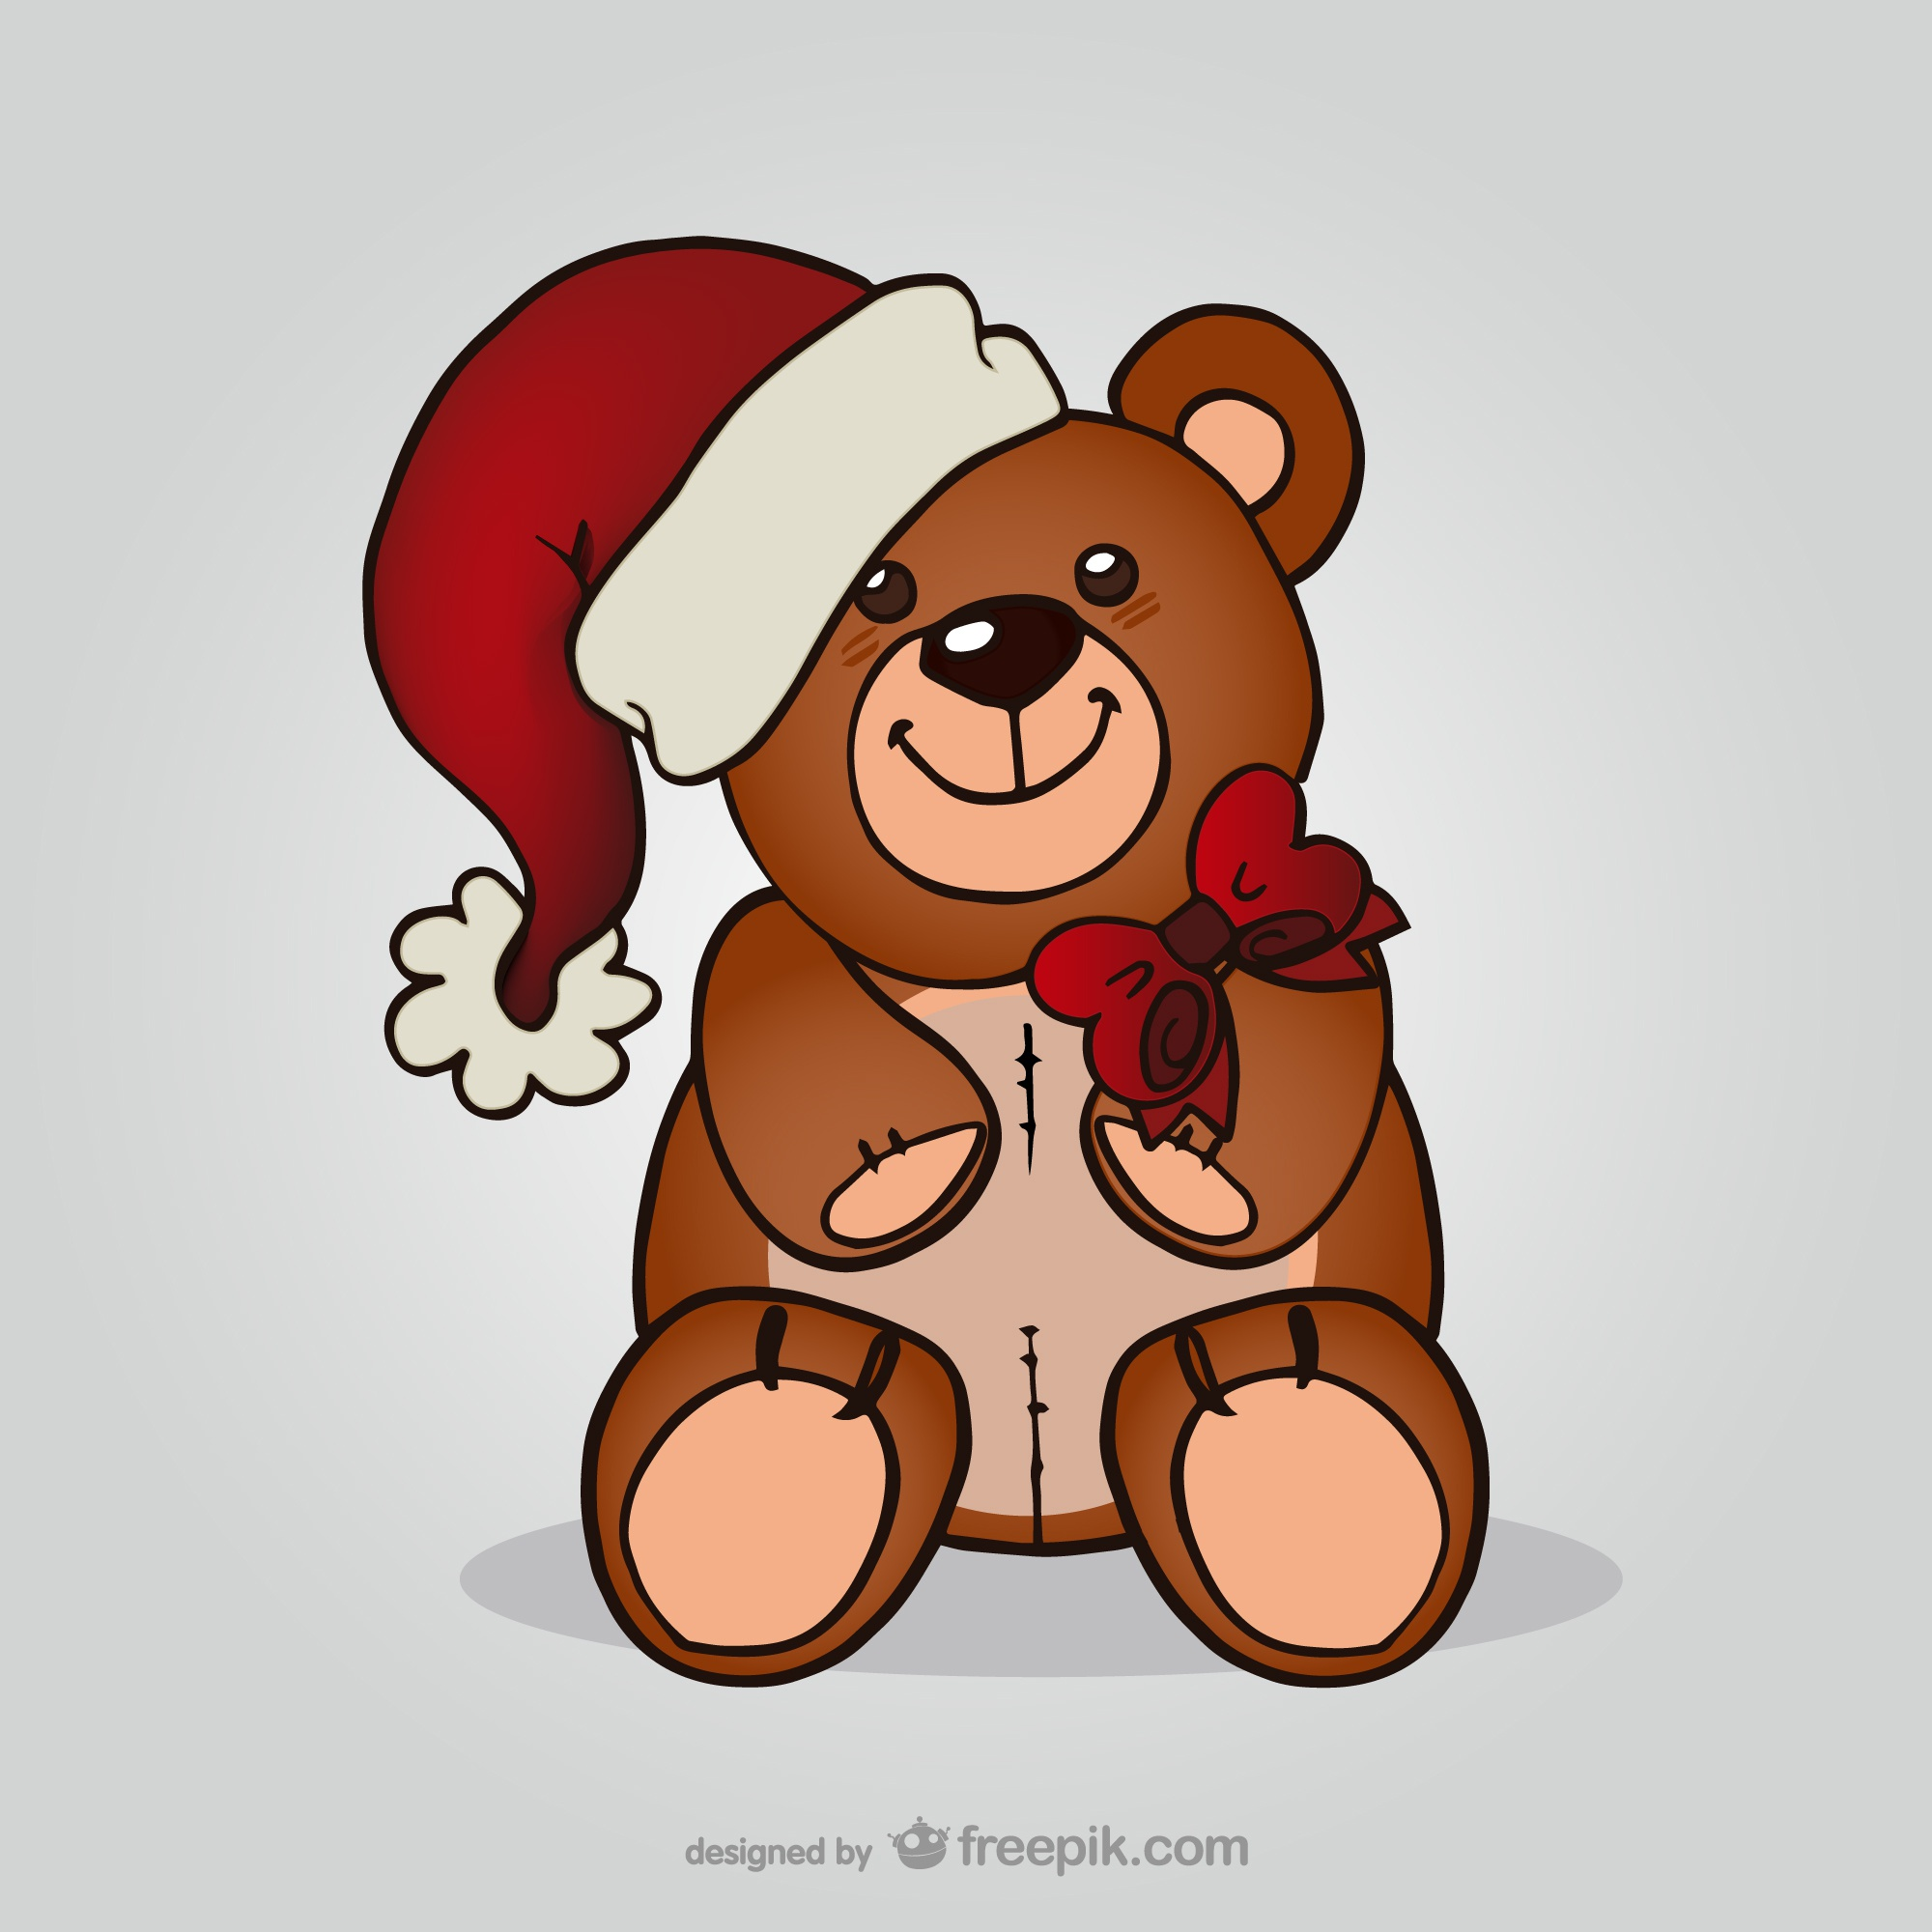 Teddy bear with Santa hat